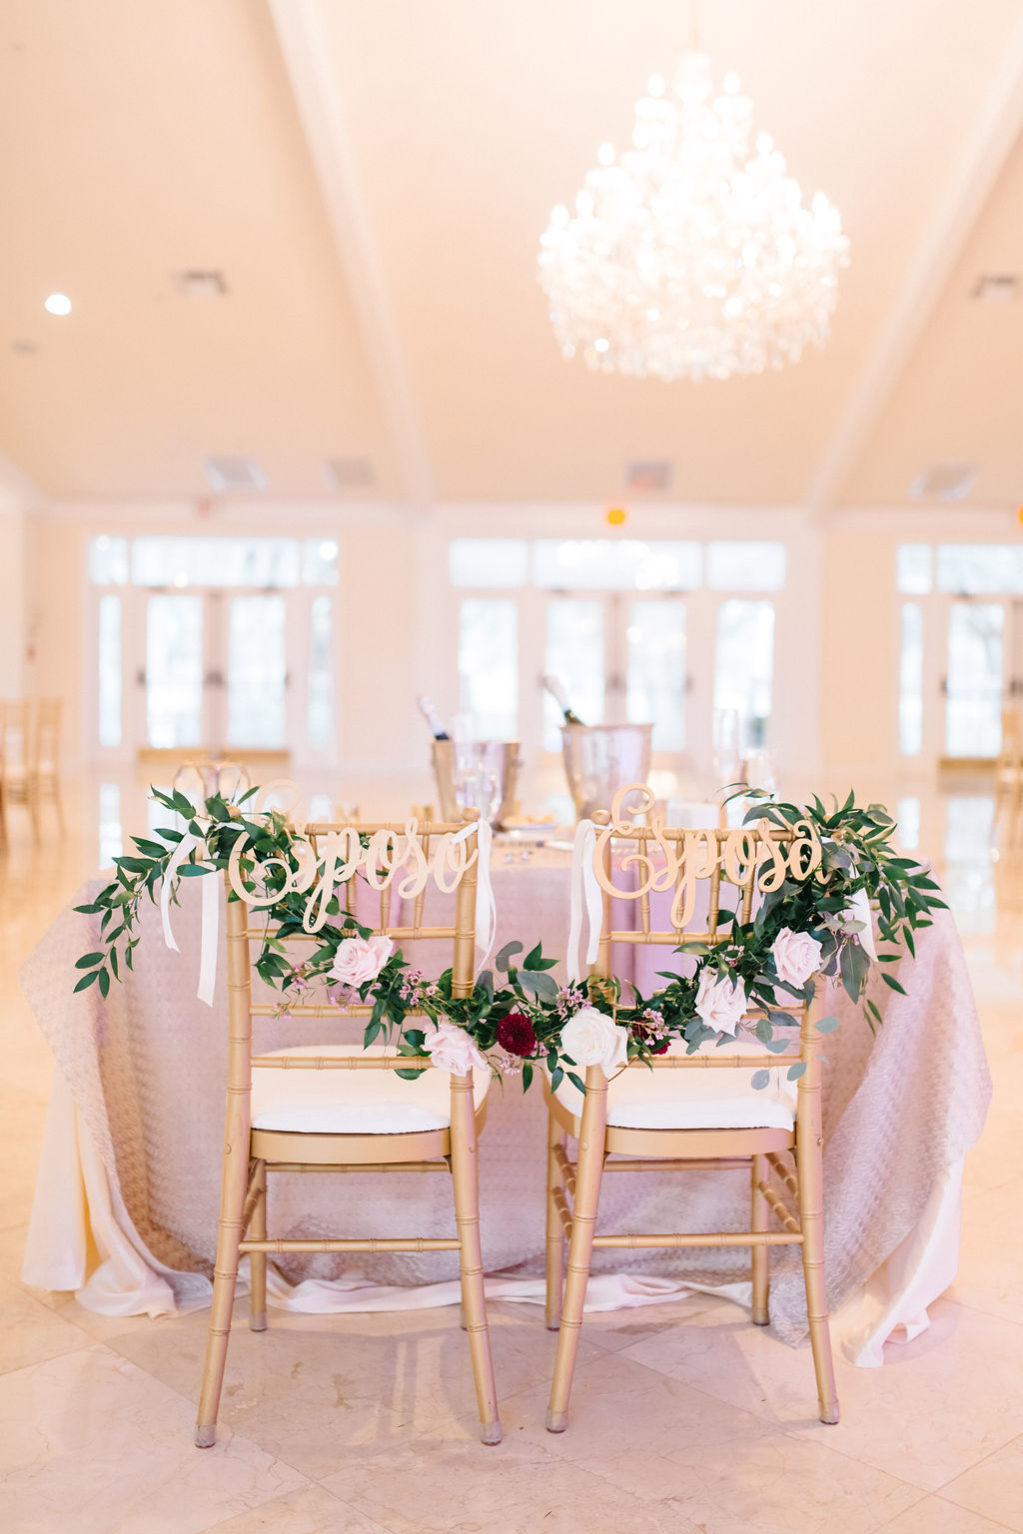 Elegant Wedding Reception Decor Sweetheart Table with Lilac Tablecloth, Gold Chiavari Chairs, Green Garland with White and Blush Roses and Laser Cut Gold Groom and Bride Chair Signs | Tampa Bay Wedding Planner Burlap to Lace